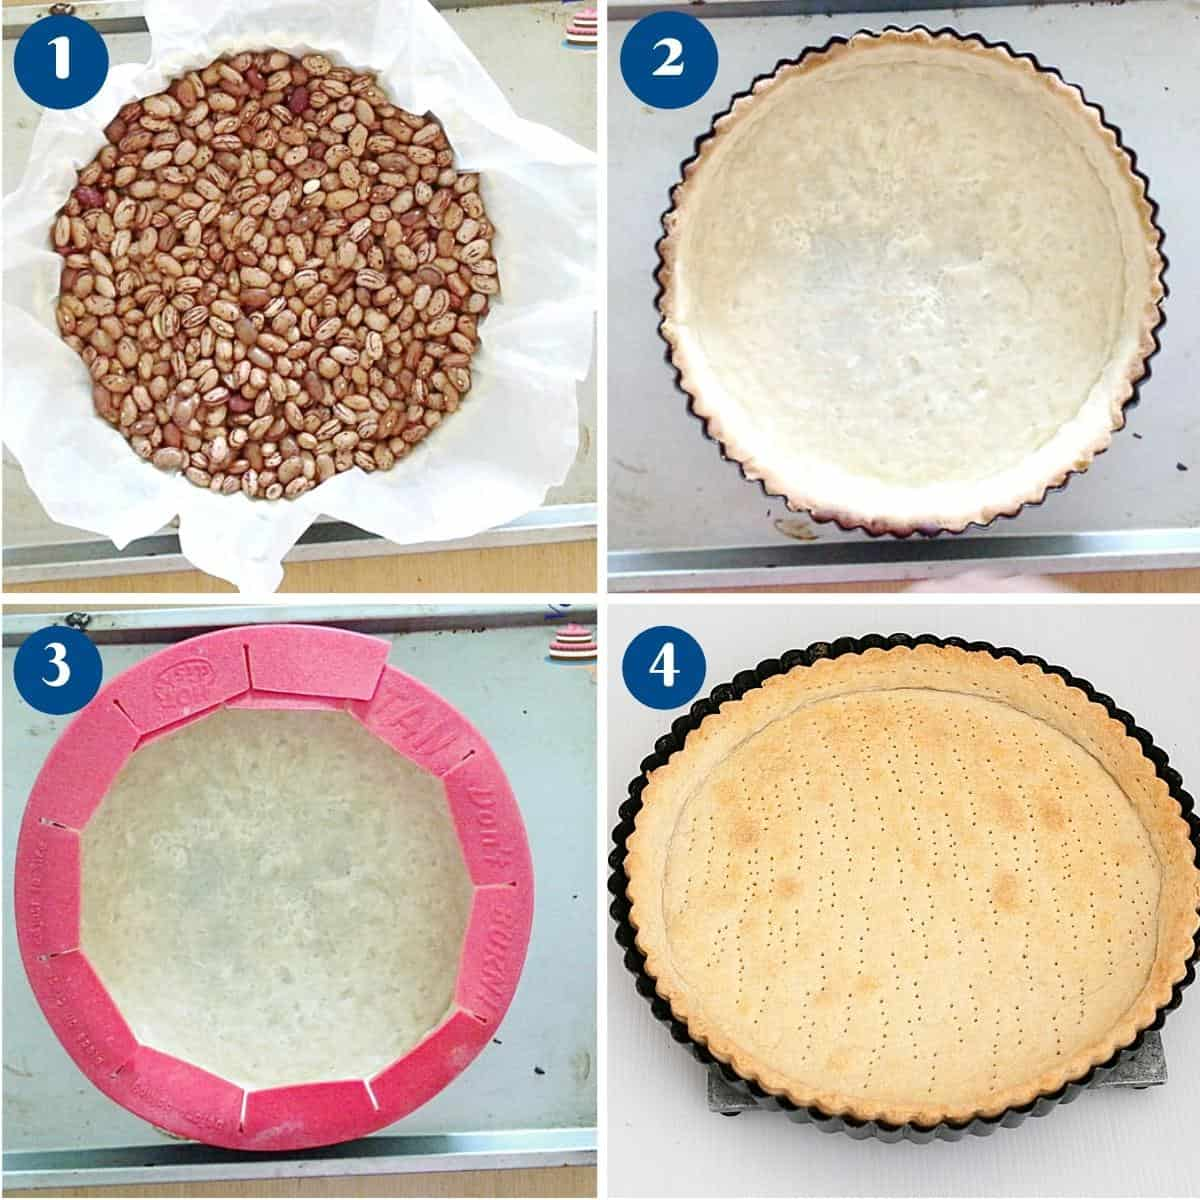 Progress pictures how to make a fully baked short crust pastry.